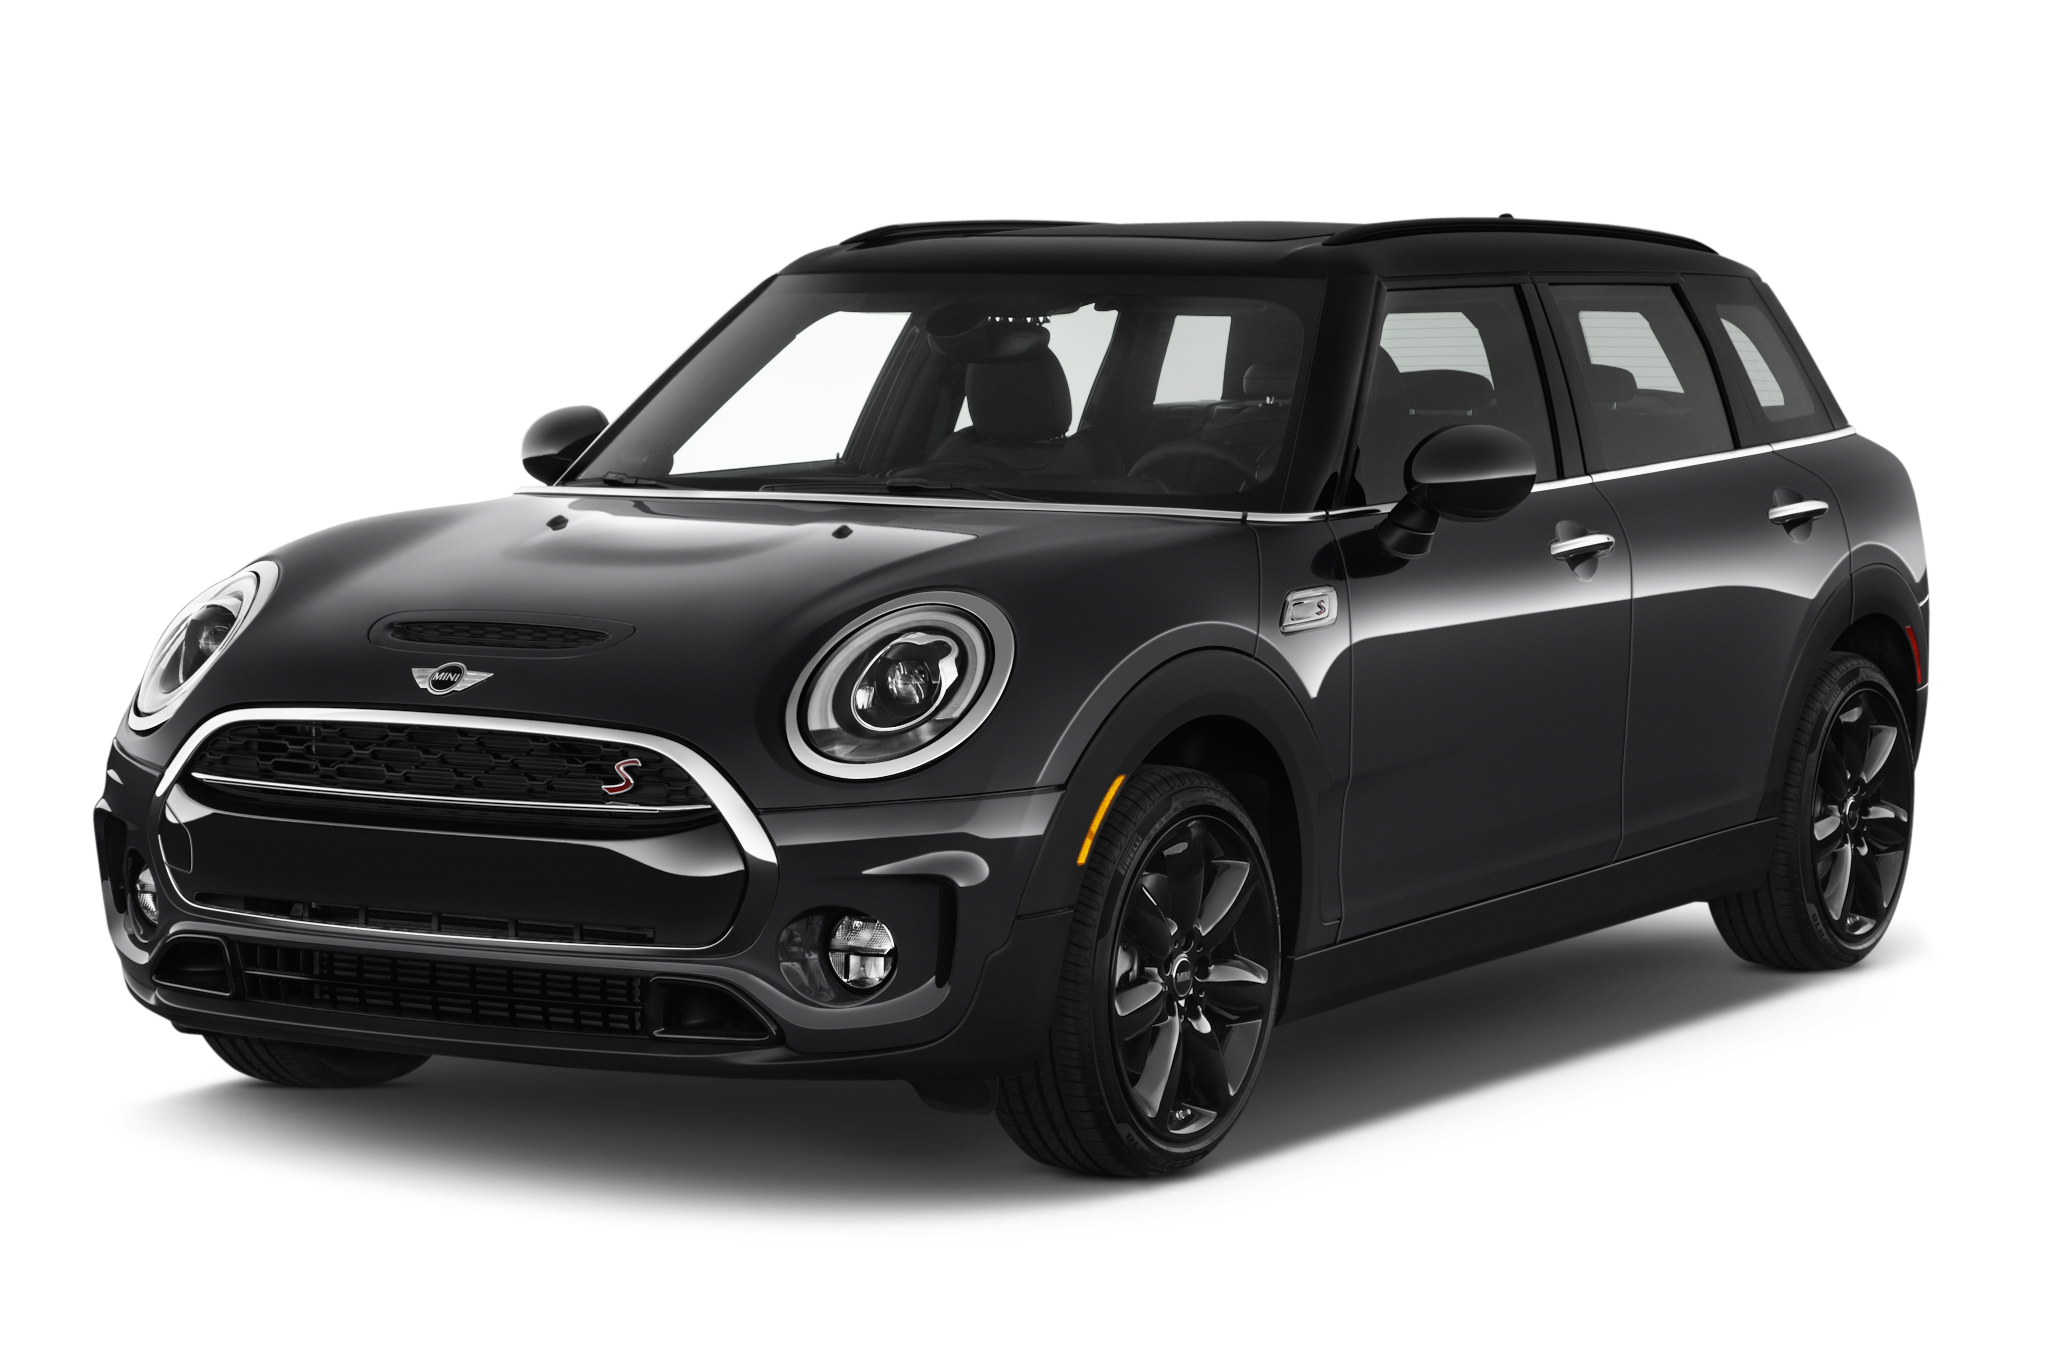 2016 mini cooper clubman reviews and rating | motortrend